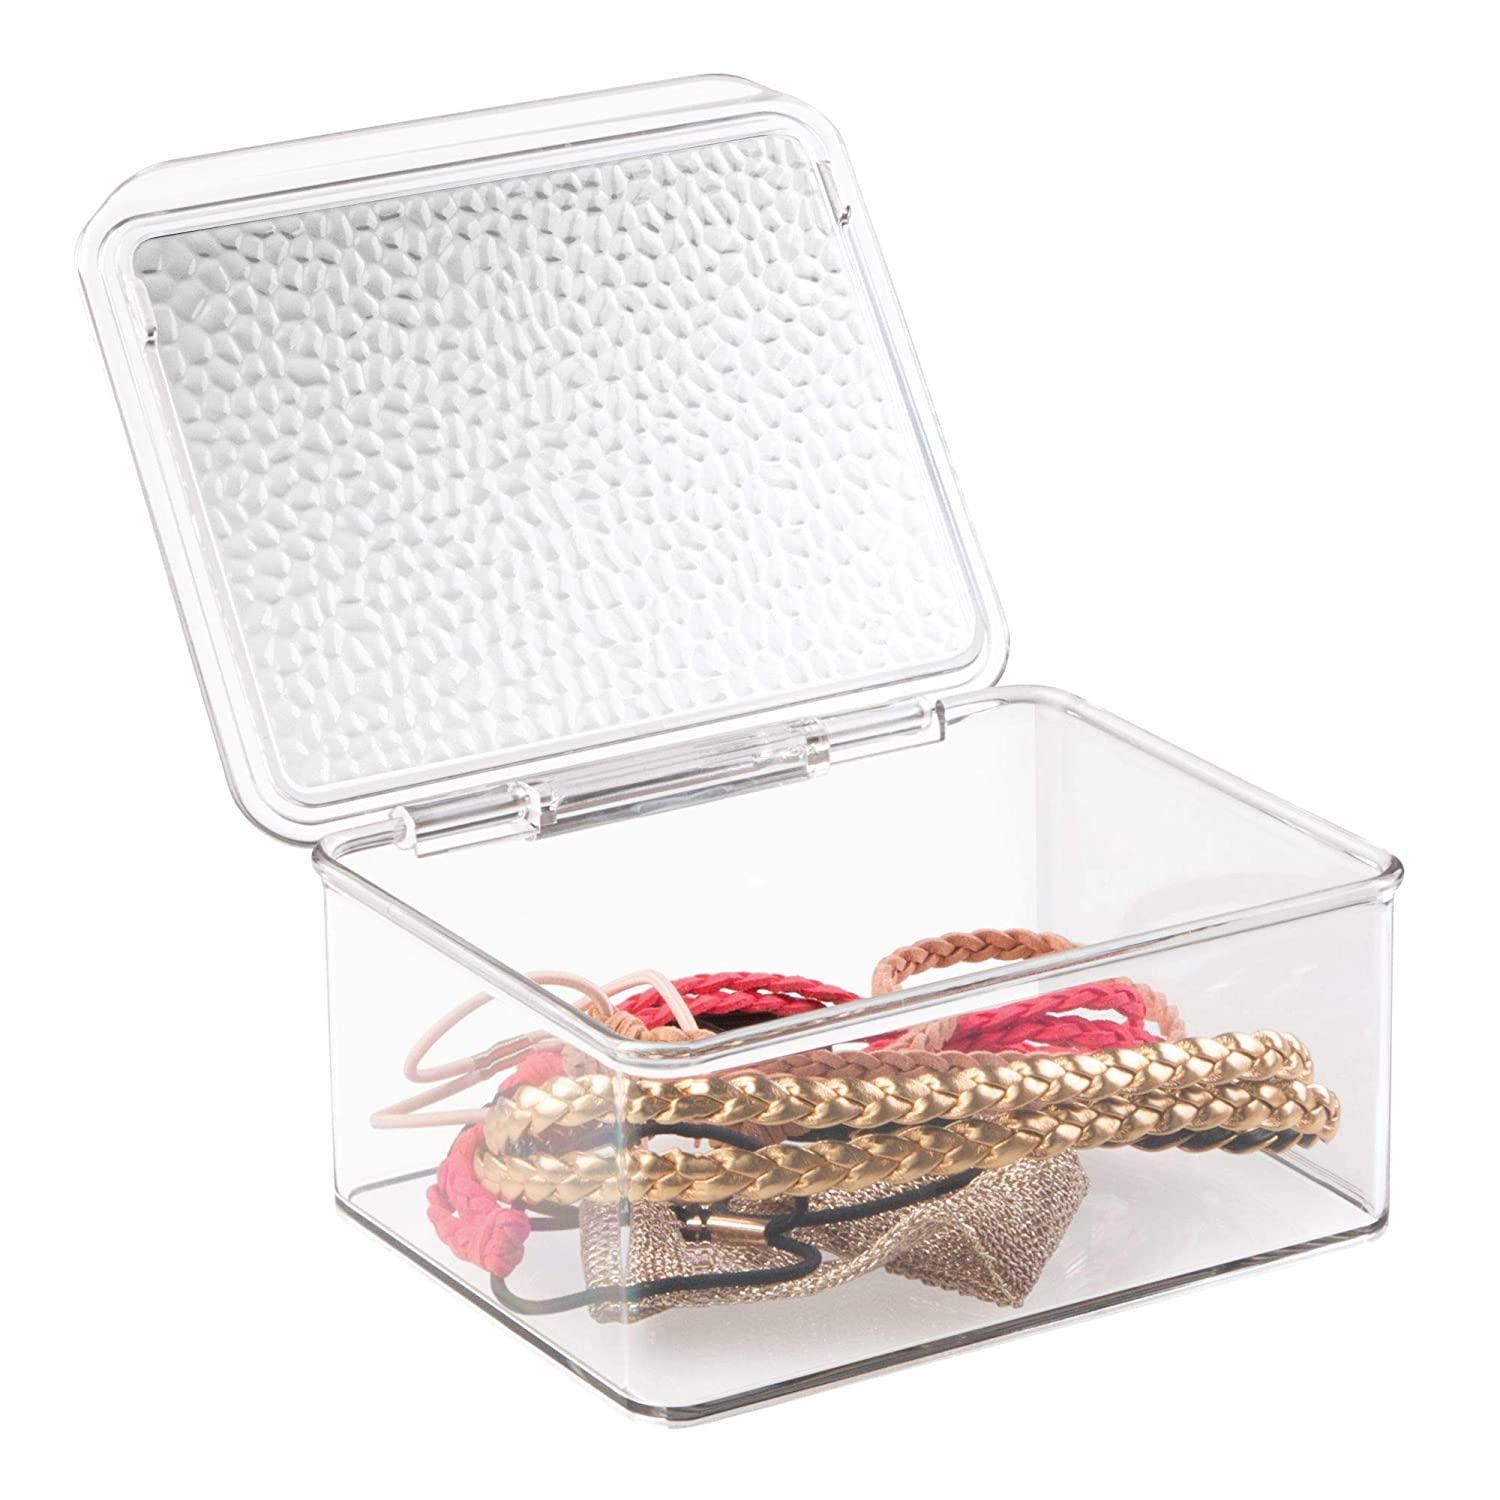 InterDesign Rain Stackable Cosmetic Organizer Box to Hold Makeup, Beauty Products - Small, Clear Inc 54950